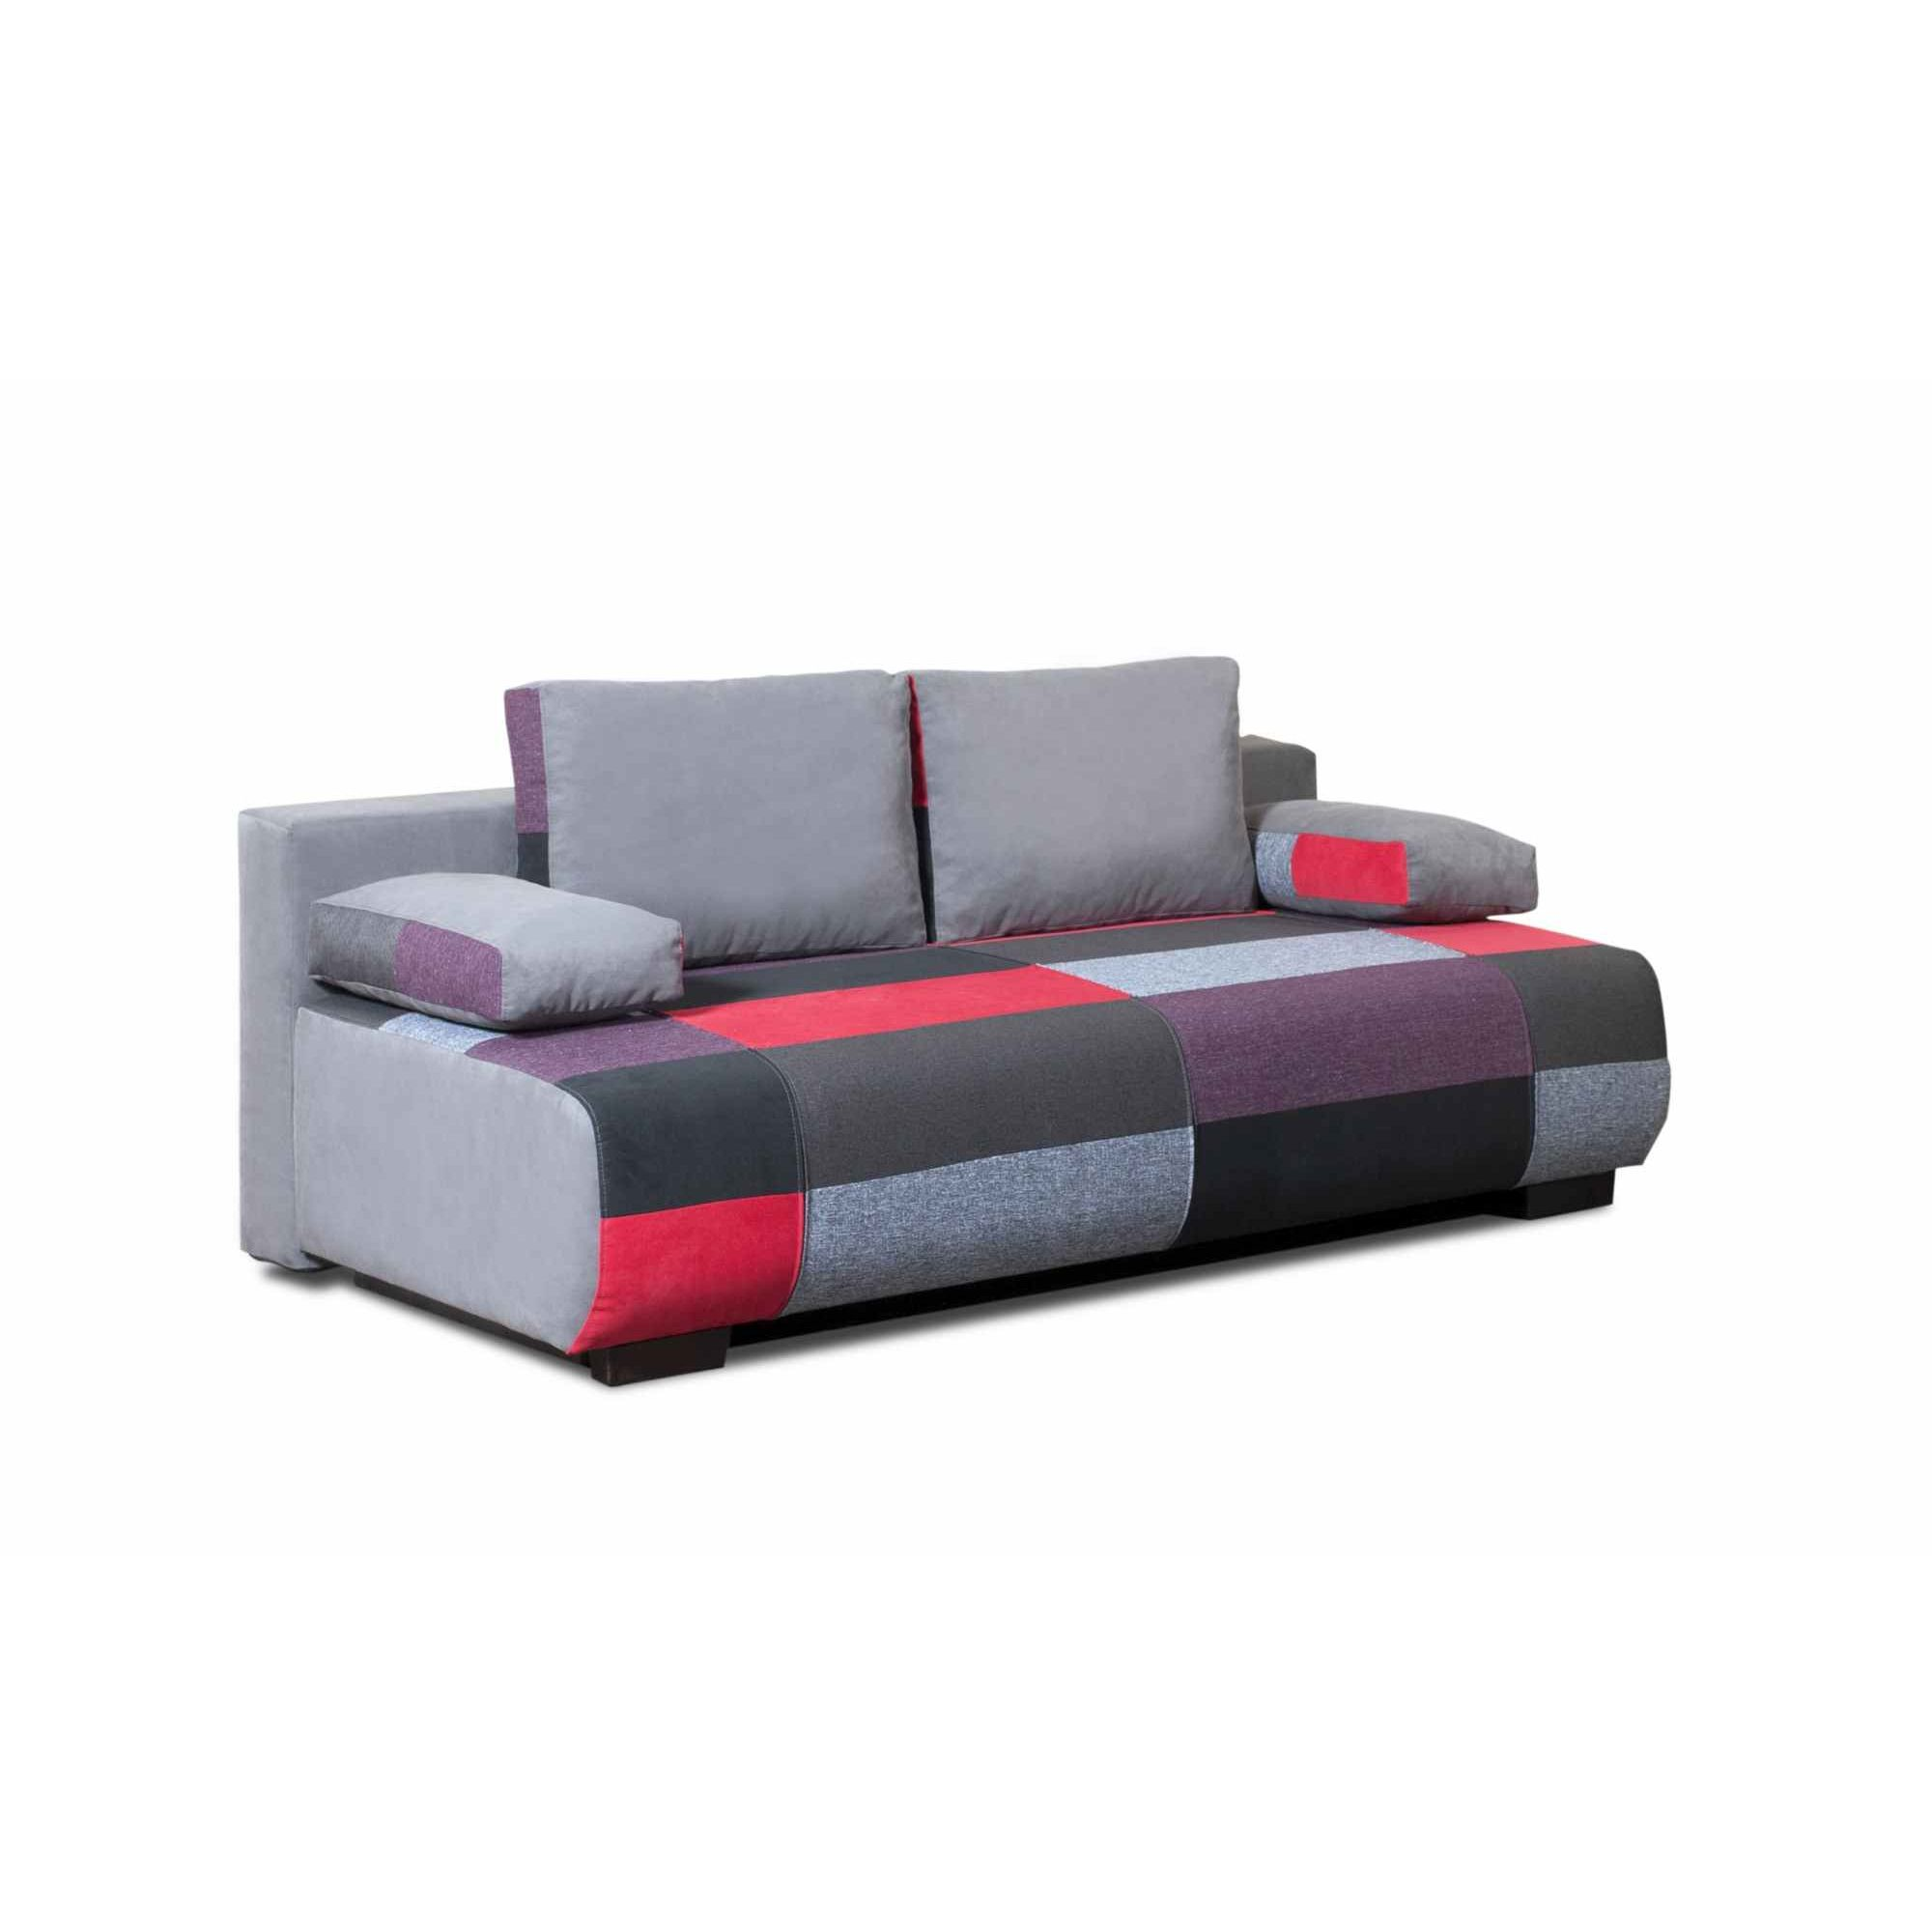 Deco in paris canape 3 places convertible en tissu rouge malte malte rouge - Canape convertible rouge ...